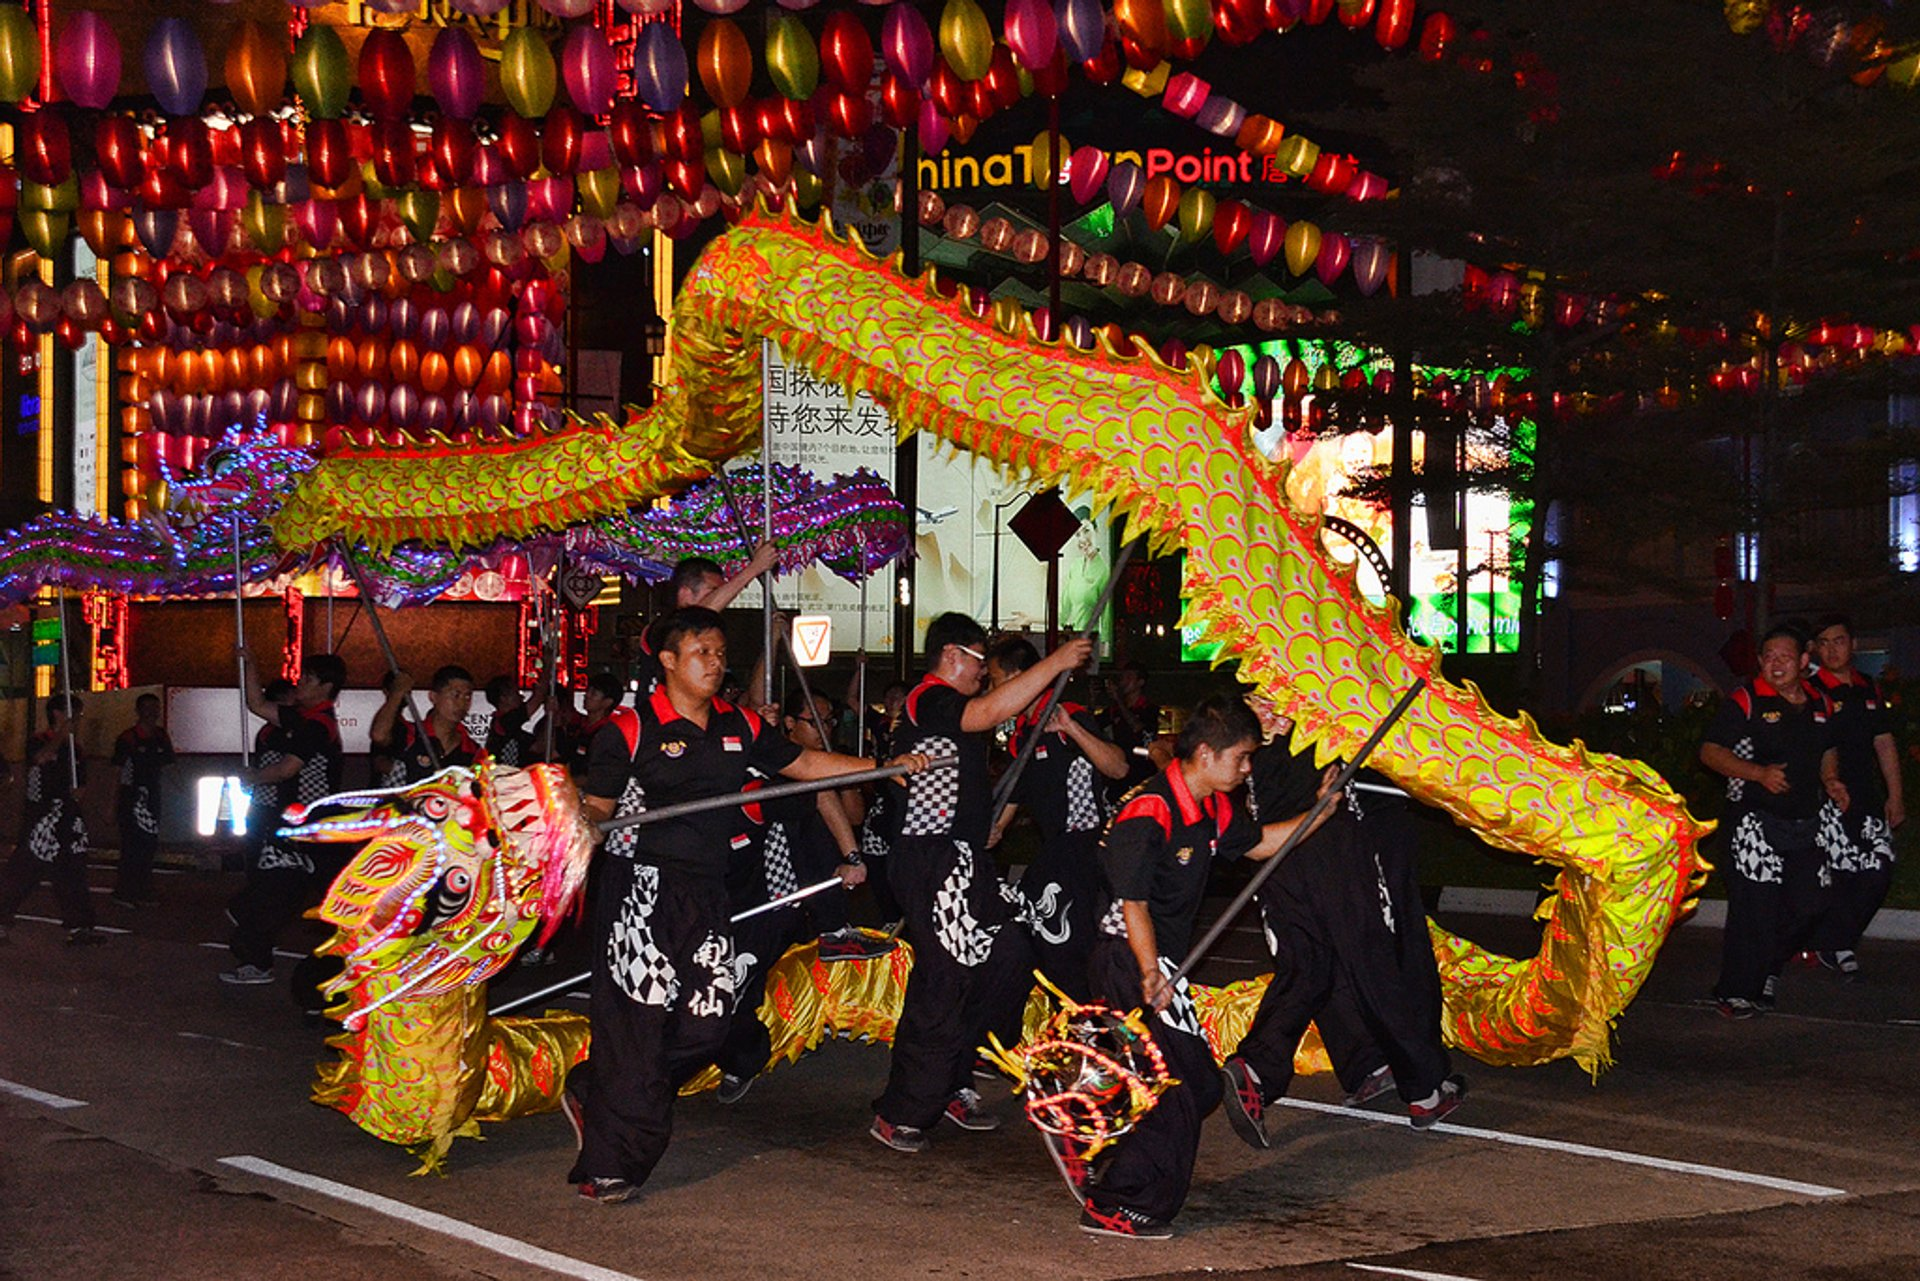 Best time for Mid-Autumn Festival in Singapore